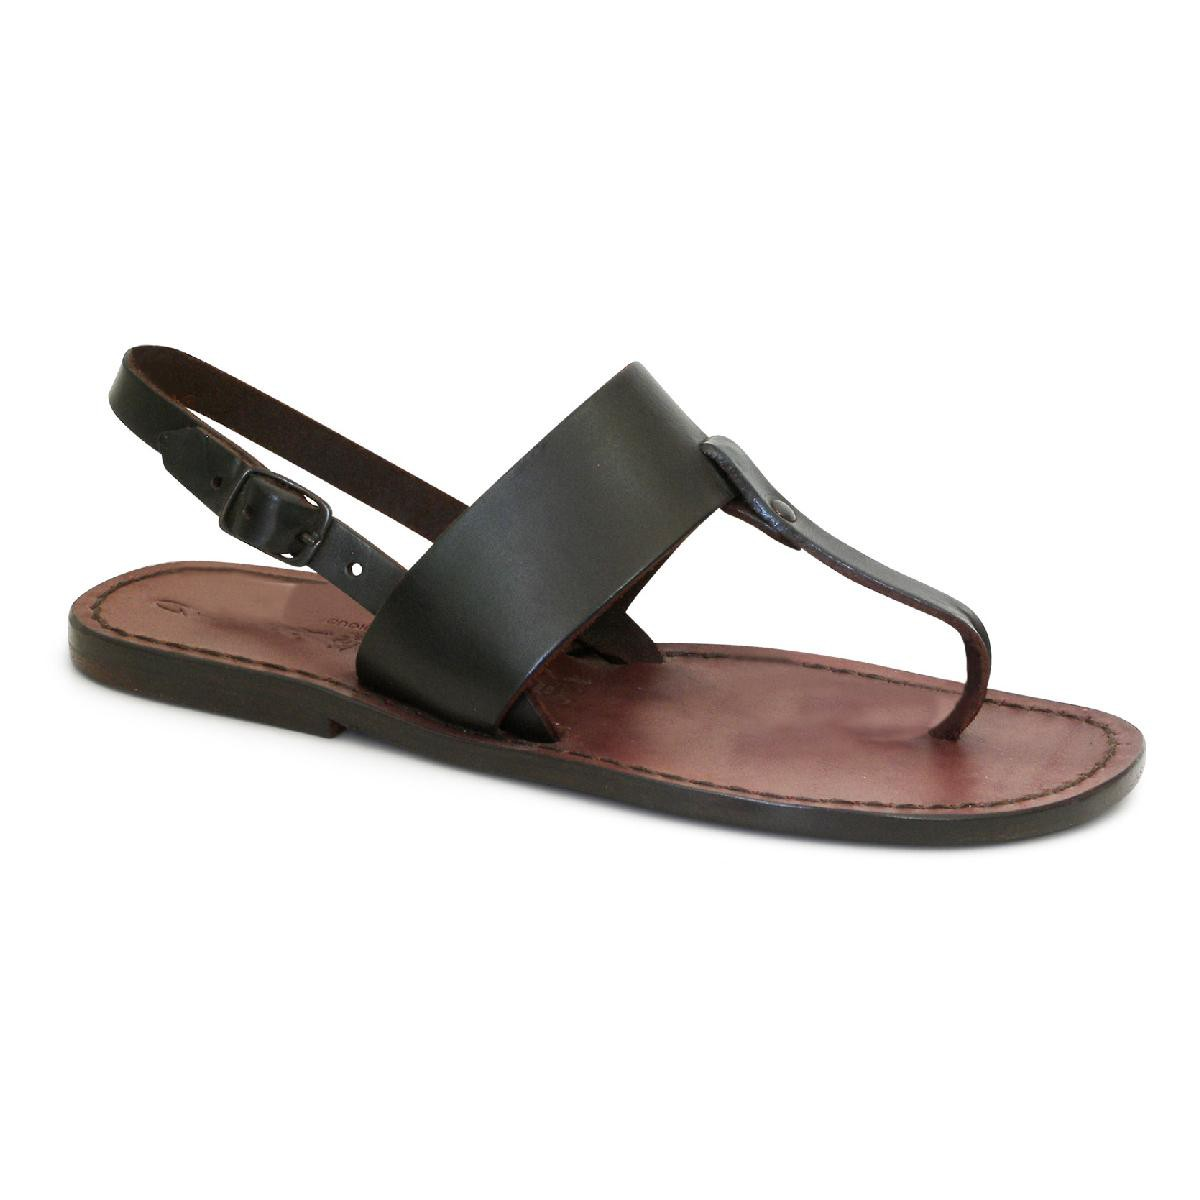 d8b09dfb5e4 Thong sandals for women handmade in brown leather